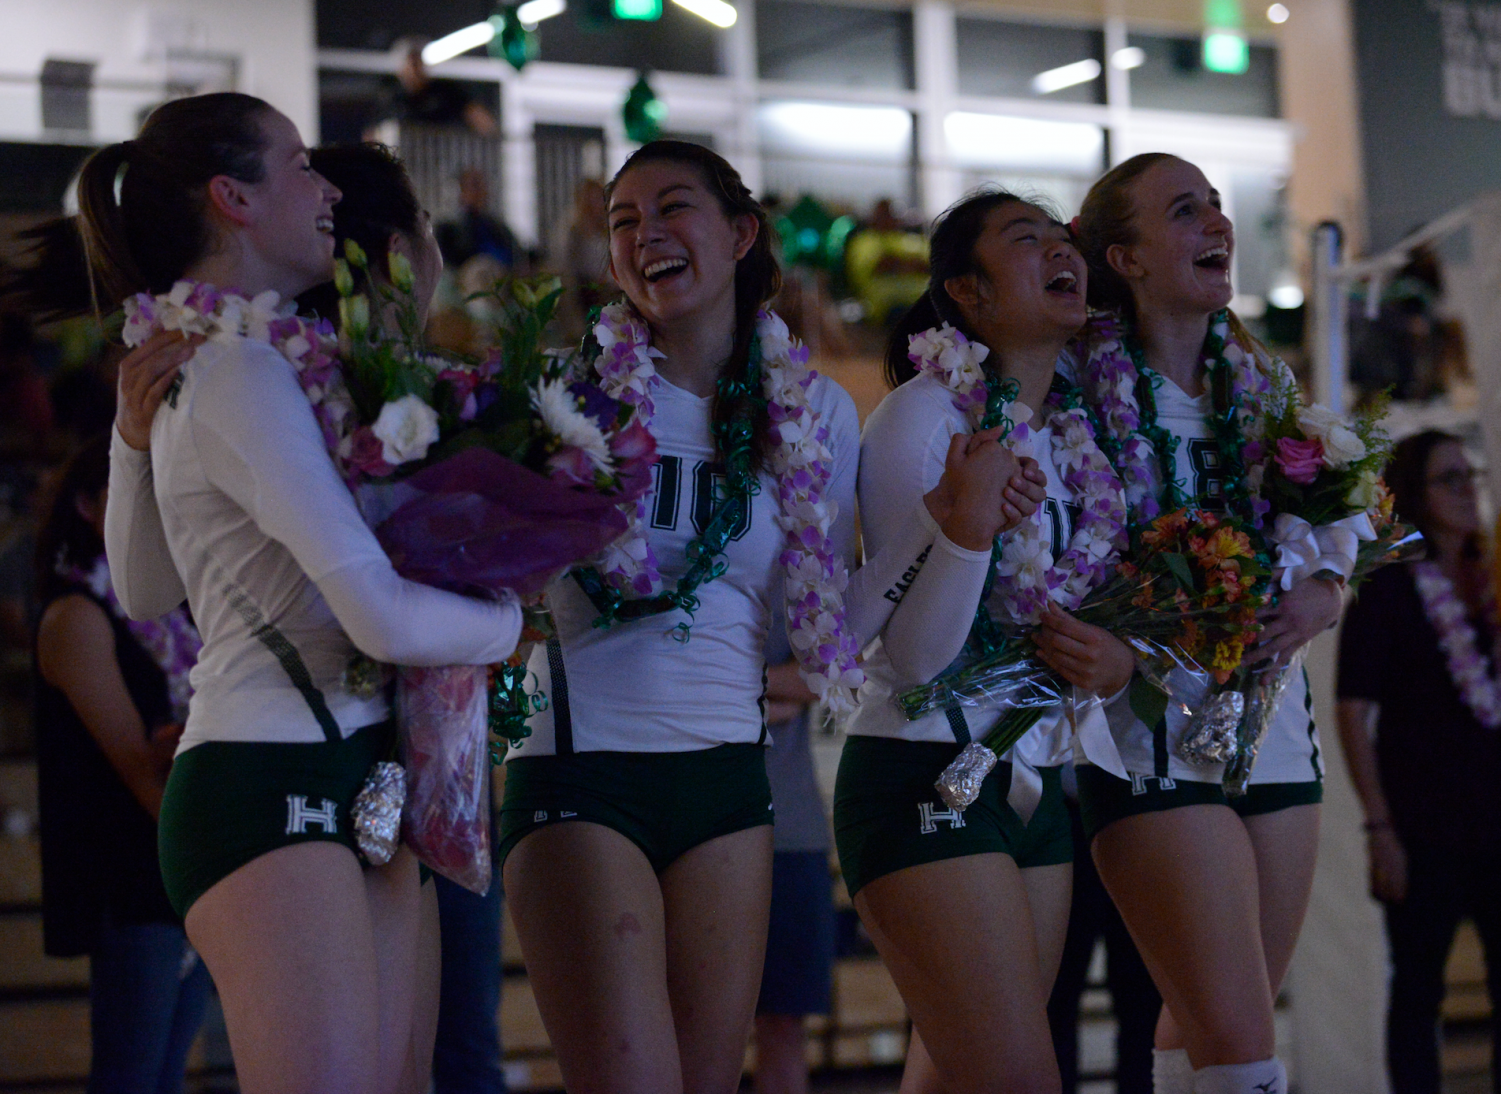 Seniors Lauren Napier, Melissa Kwan, Megan Cardosi, Tiffany Shou and Isabella Spradlin laugh while watching a video honoring their achievements. All five seniors have played volleyball all four years of high school.